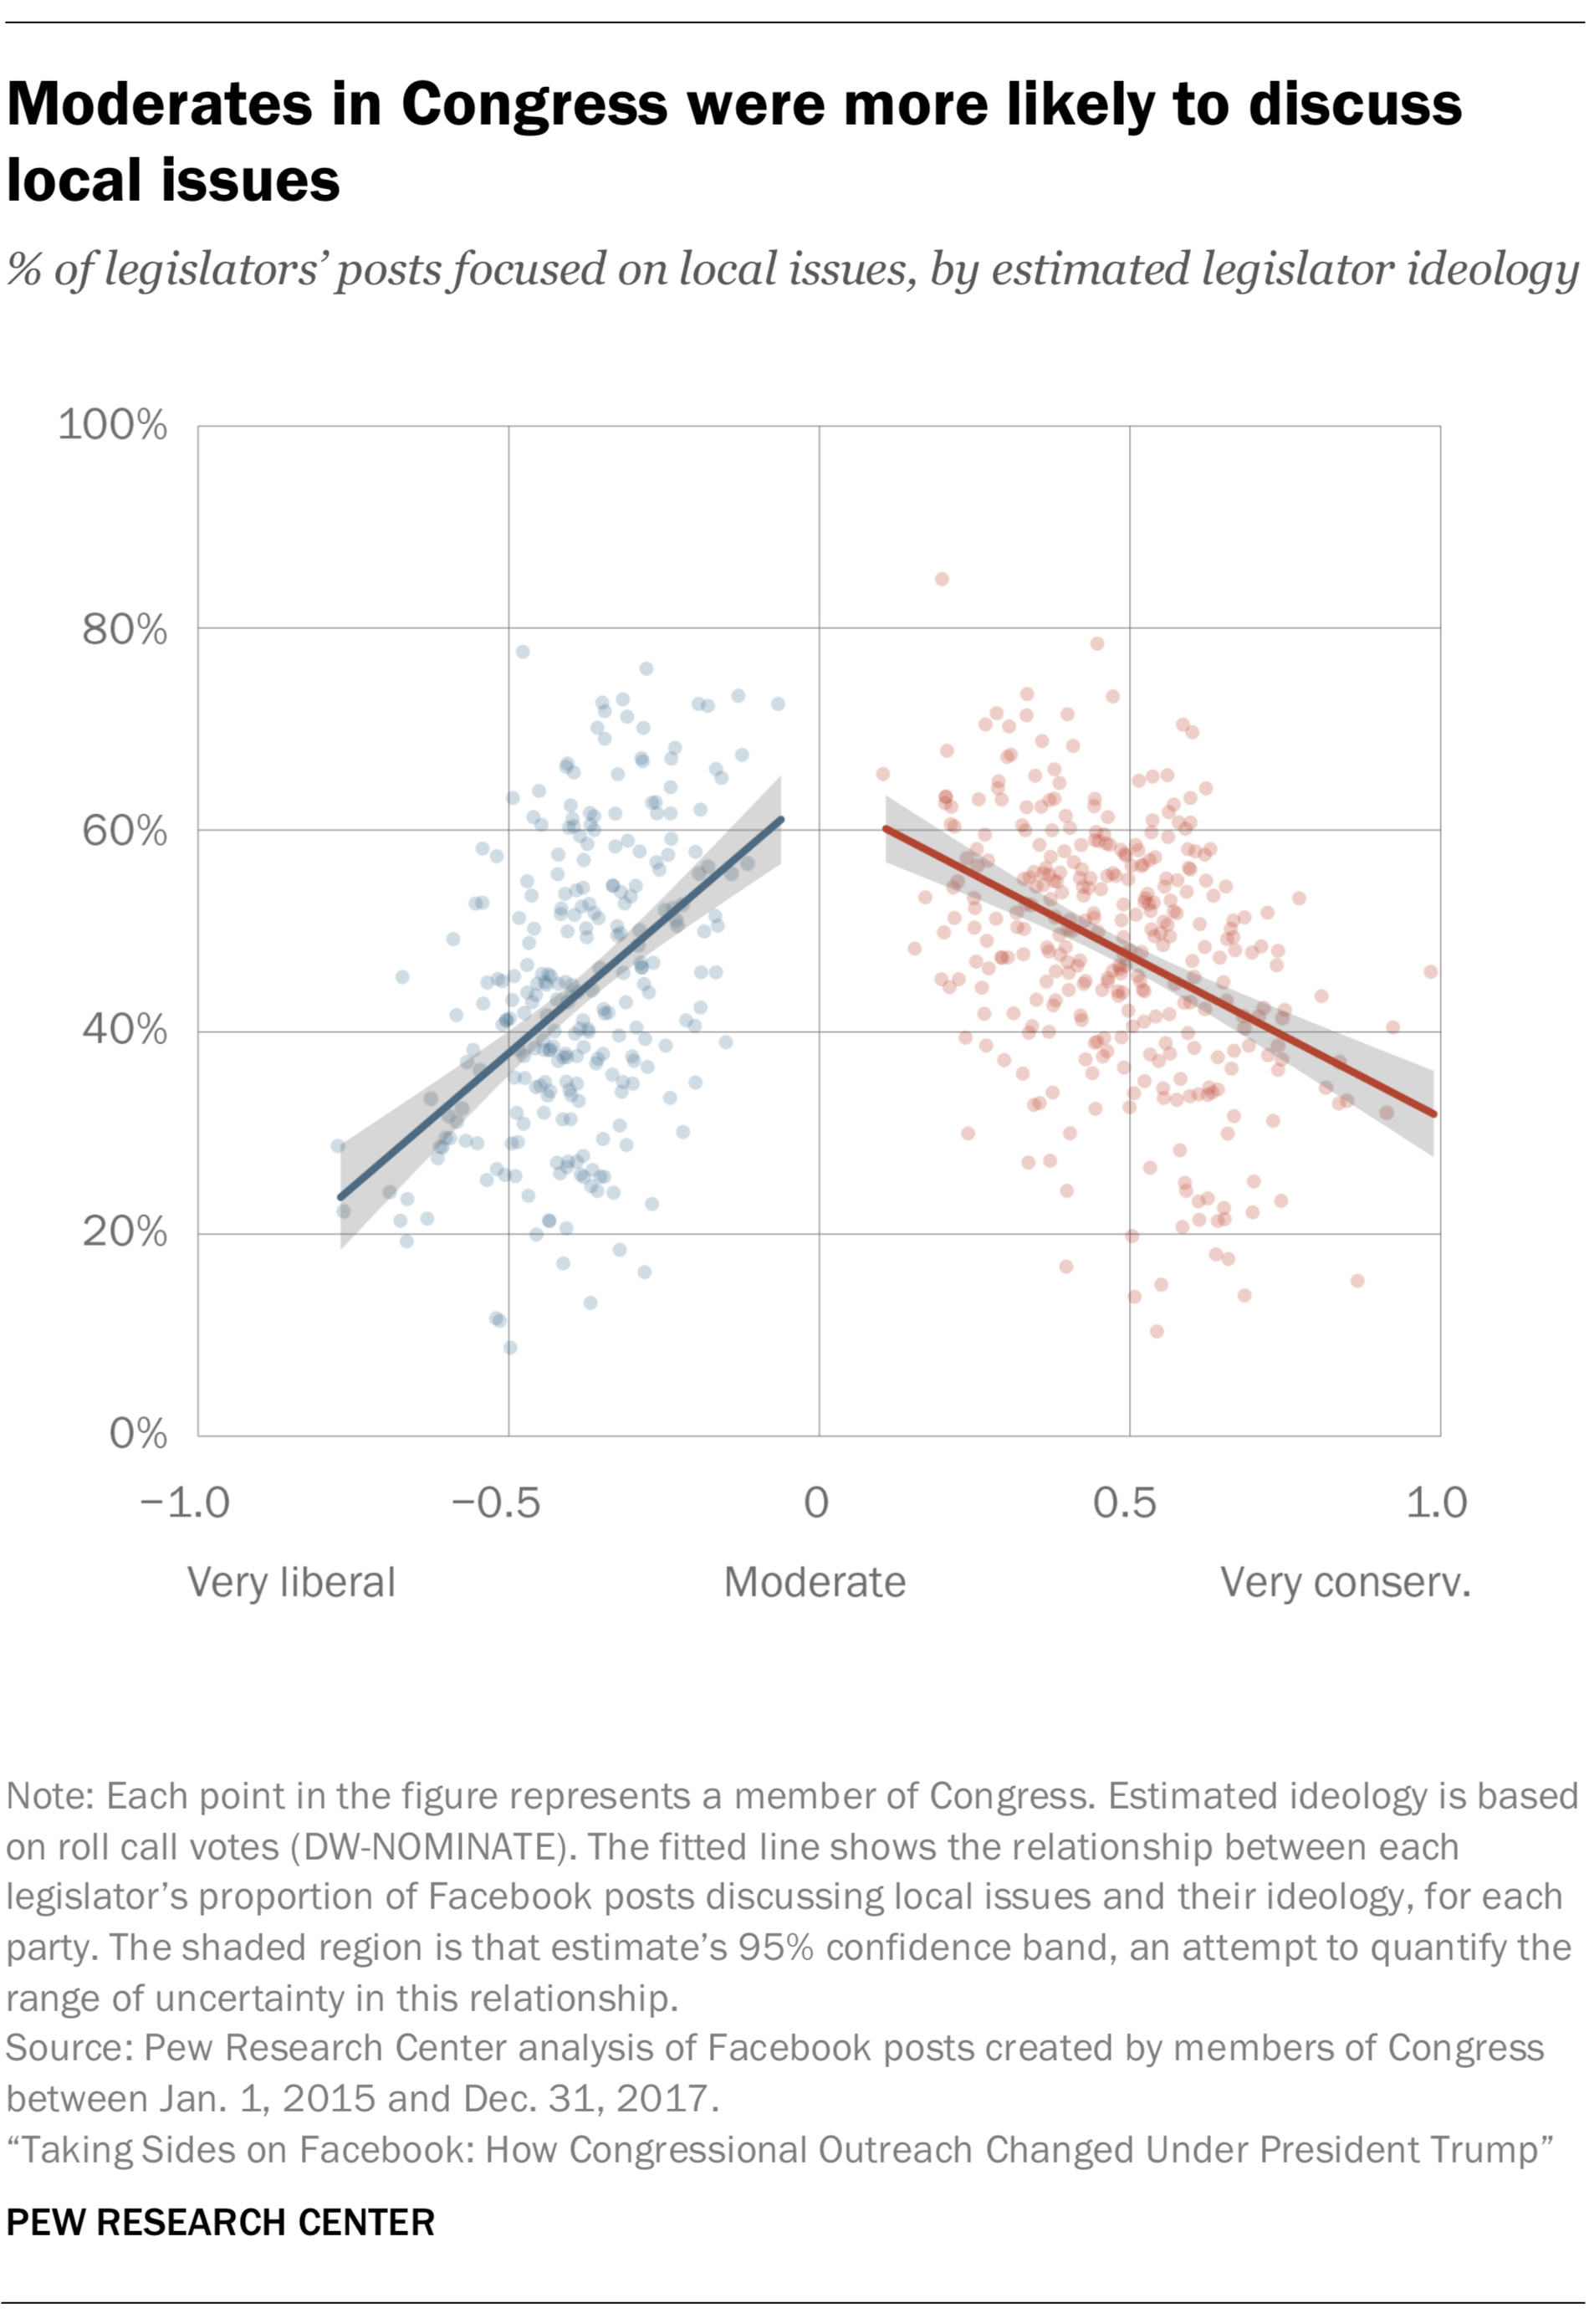 Moderates in Congress were more likely to discuss local issues